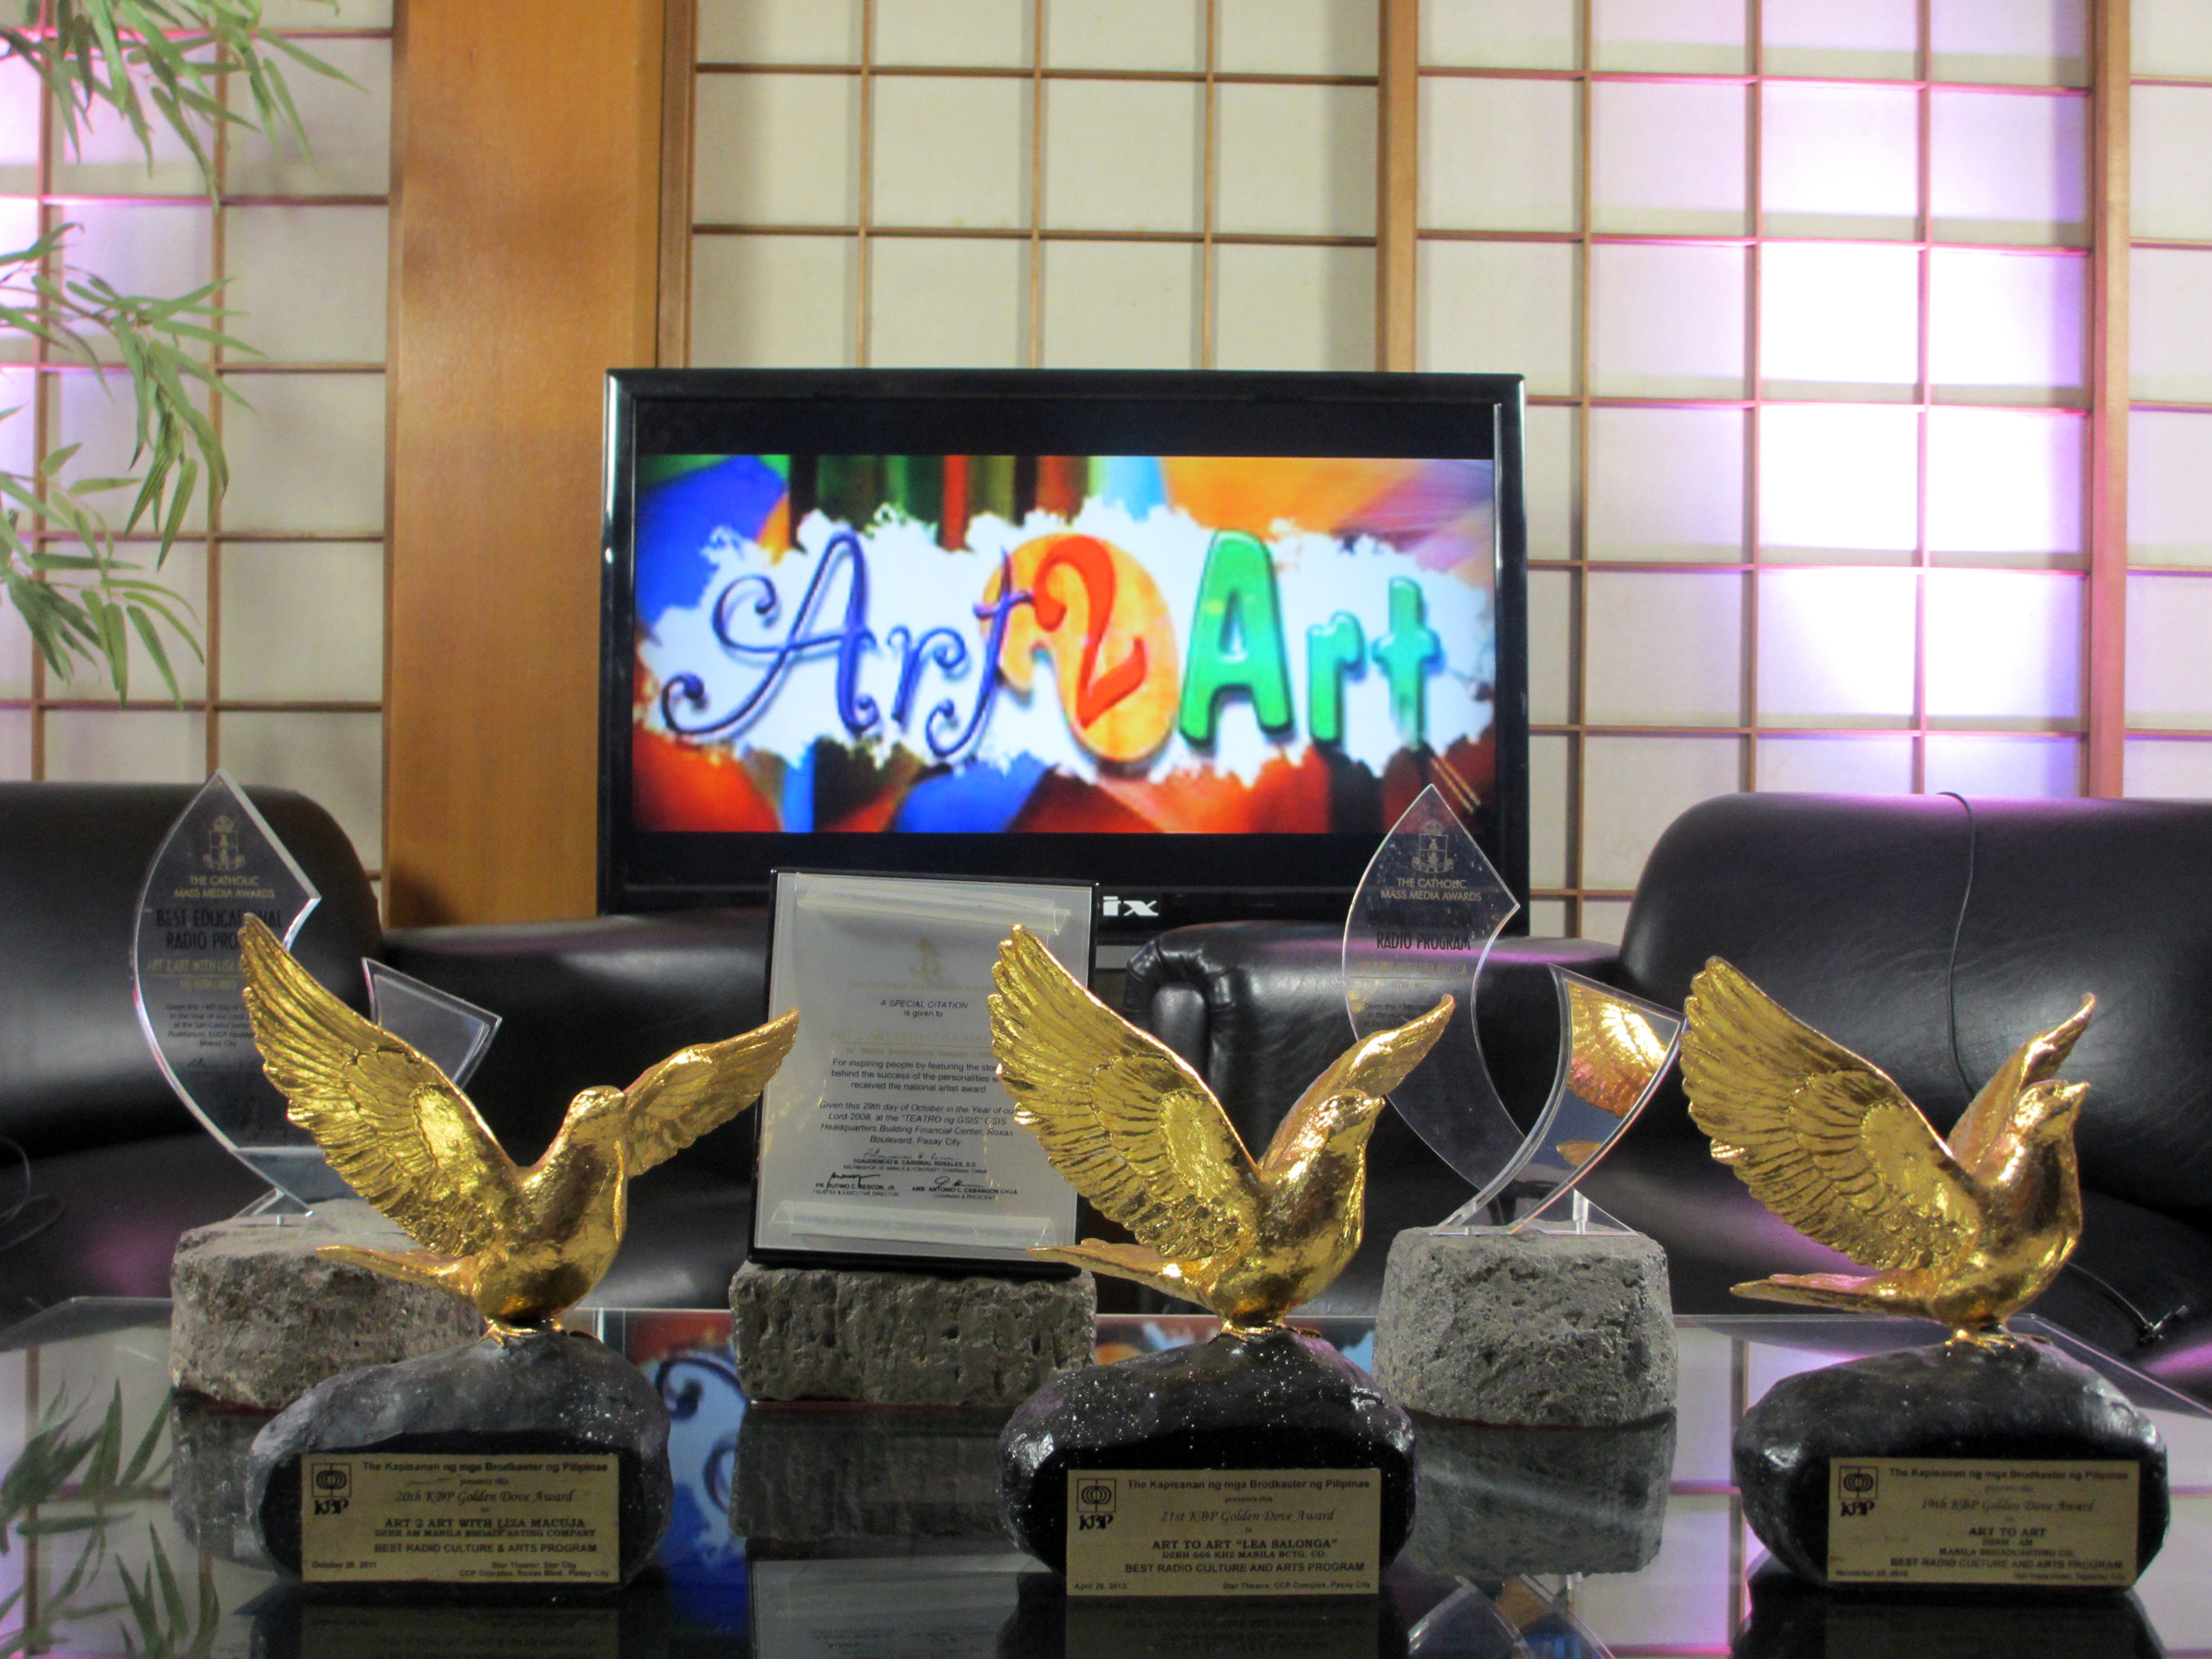 Since its initial broadcast in 2007,  Art 2 Art  has won several awards for its art advocacy.